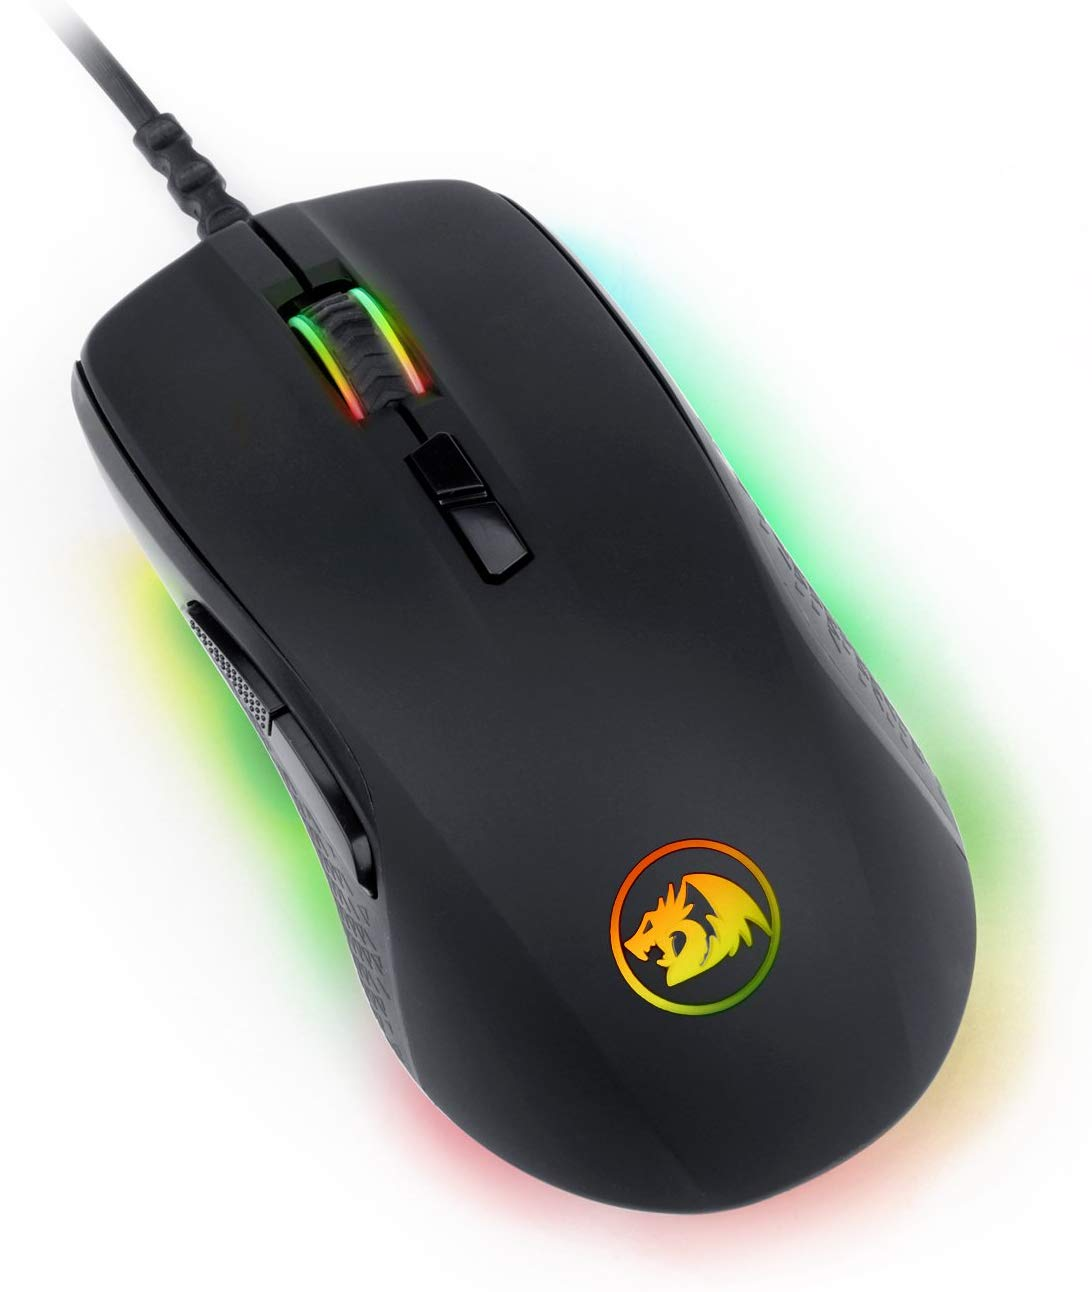 Redragon M718-RGB Optical Gaming Mouse RGB LED Backlit Wired MMO PC Gaming Mouse